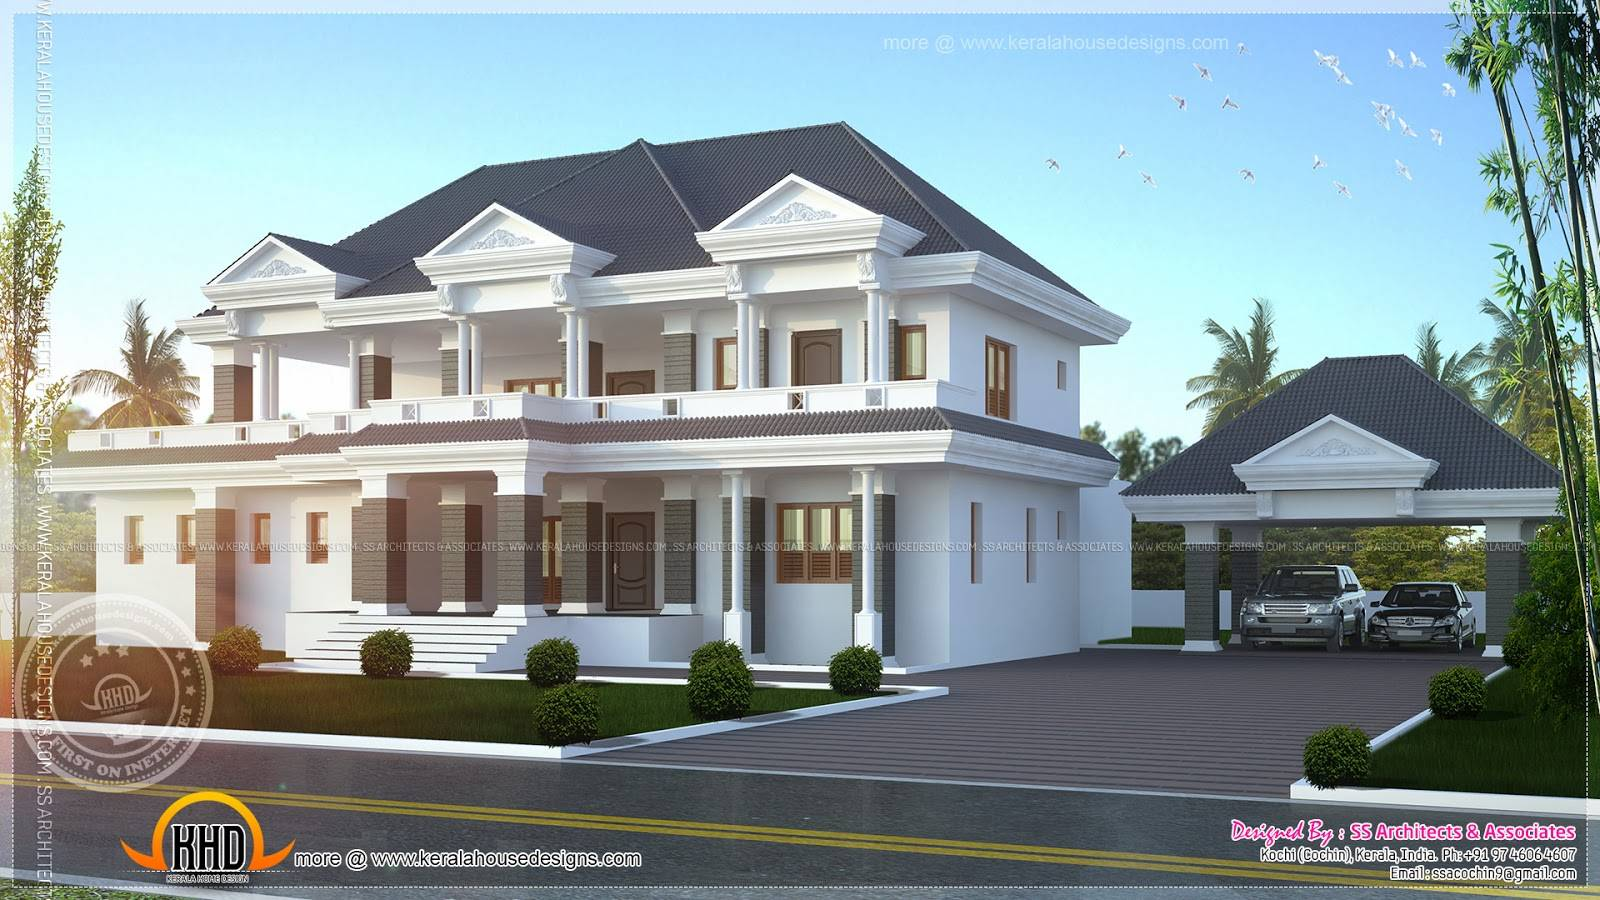 Modern Super Luxury Home Design Kerala Floor Plans House Plans - Luxury home designs and floor plans